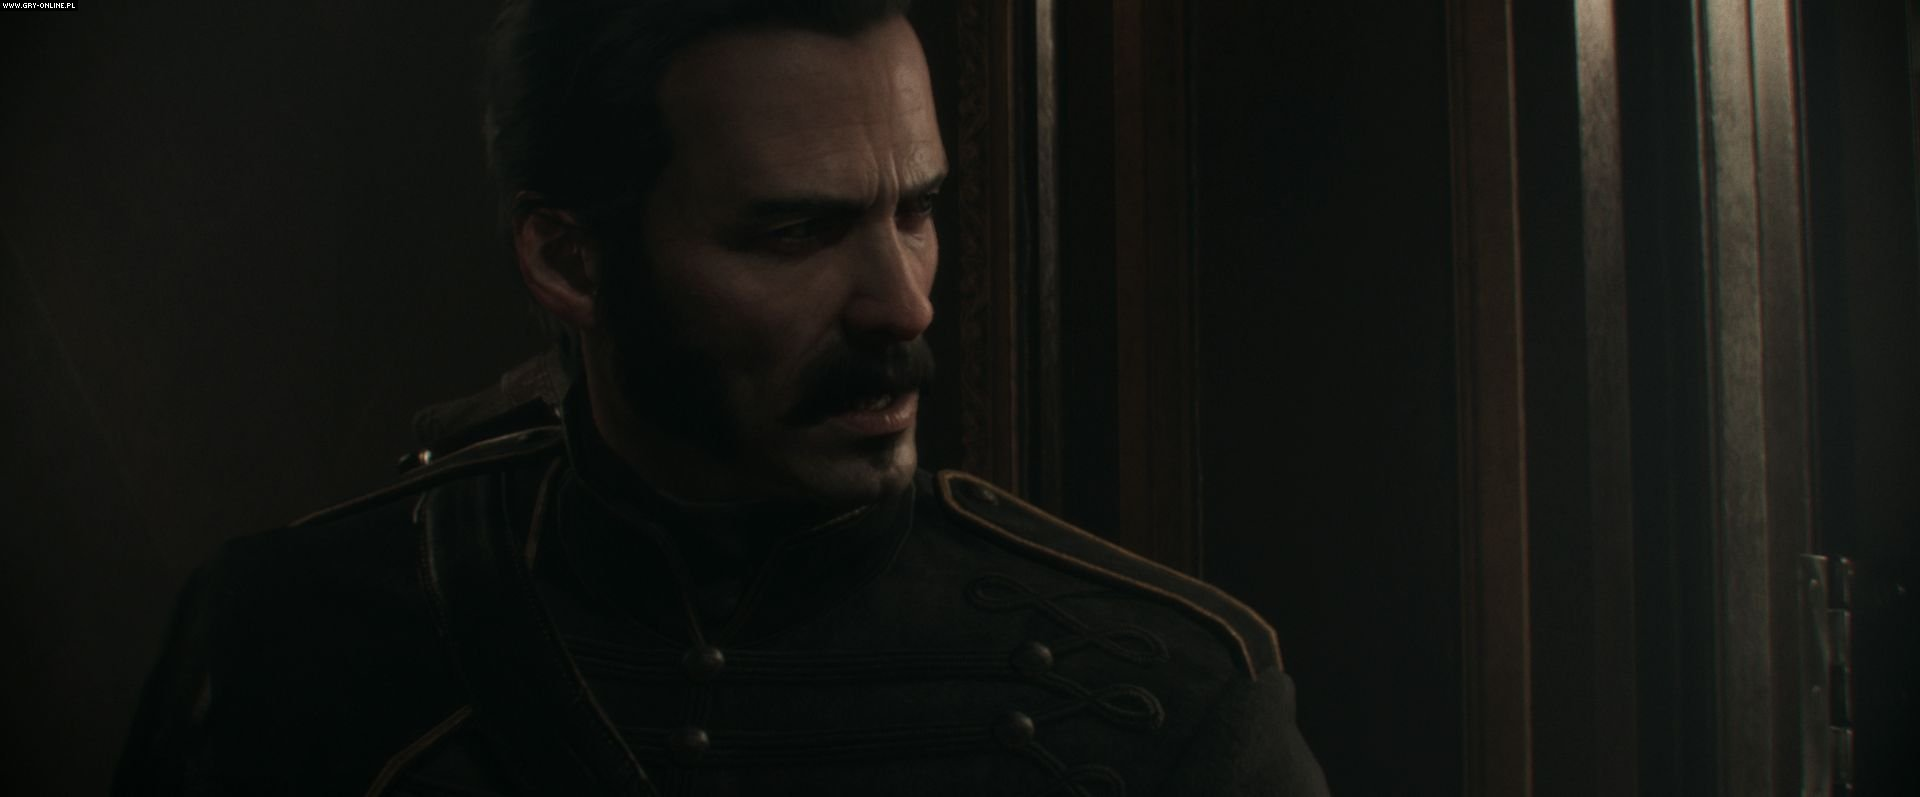 The Order: 1886 PS4 Gry Screen 4/69, Ready At Dawn Studios, Sony Interactive Entertainment